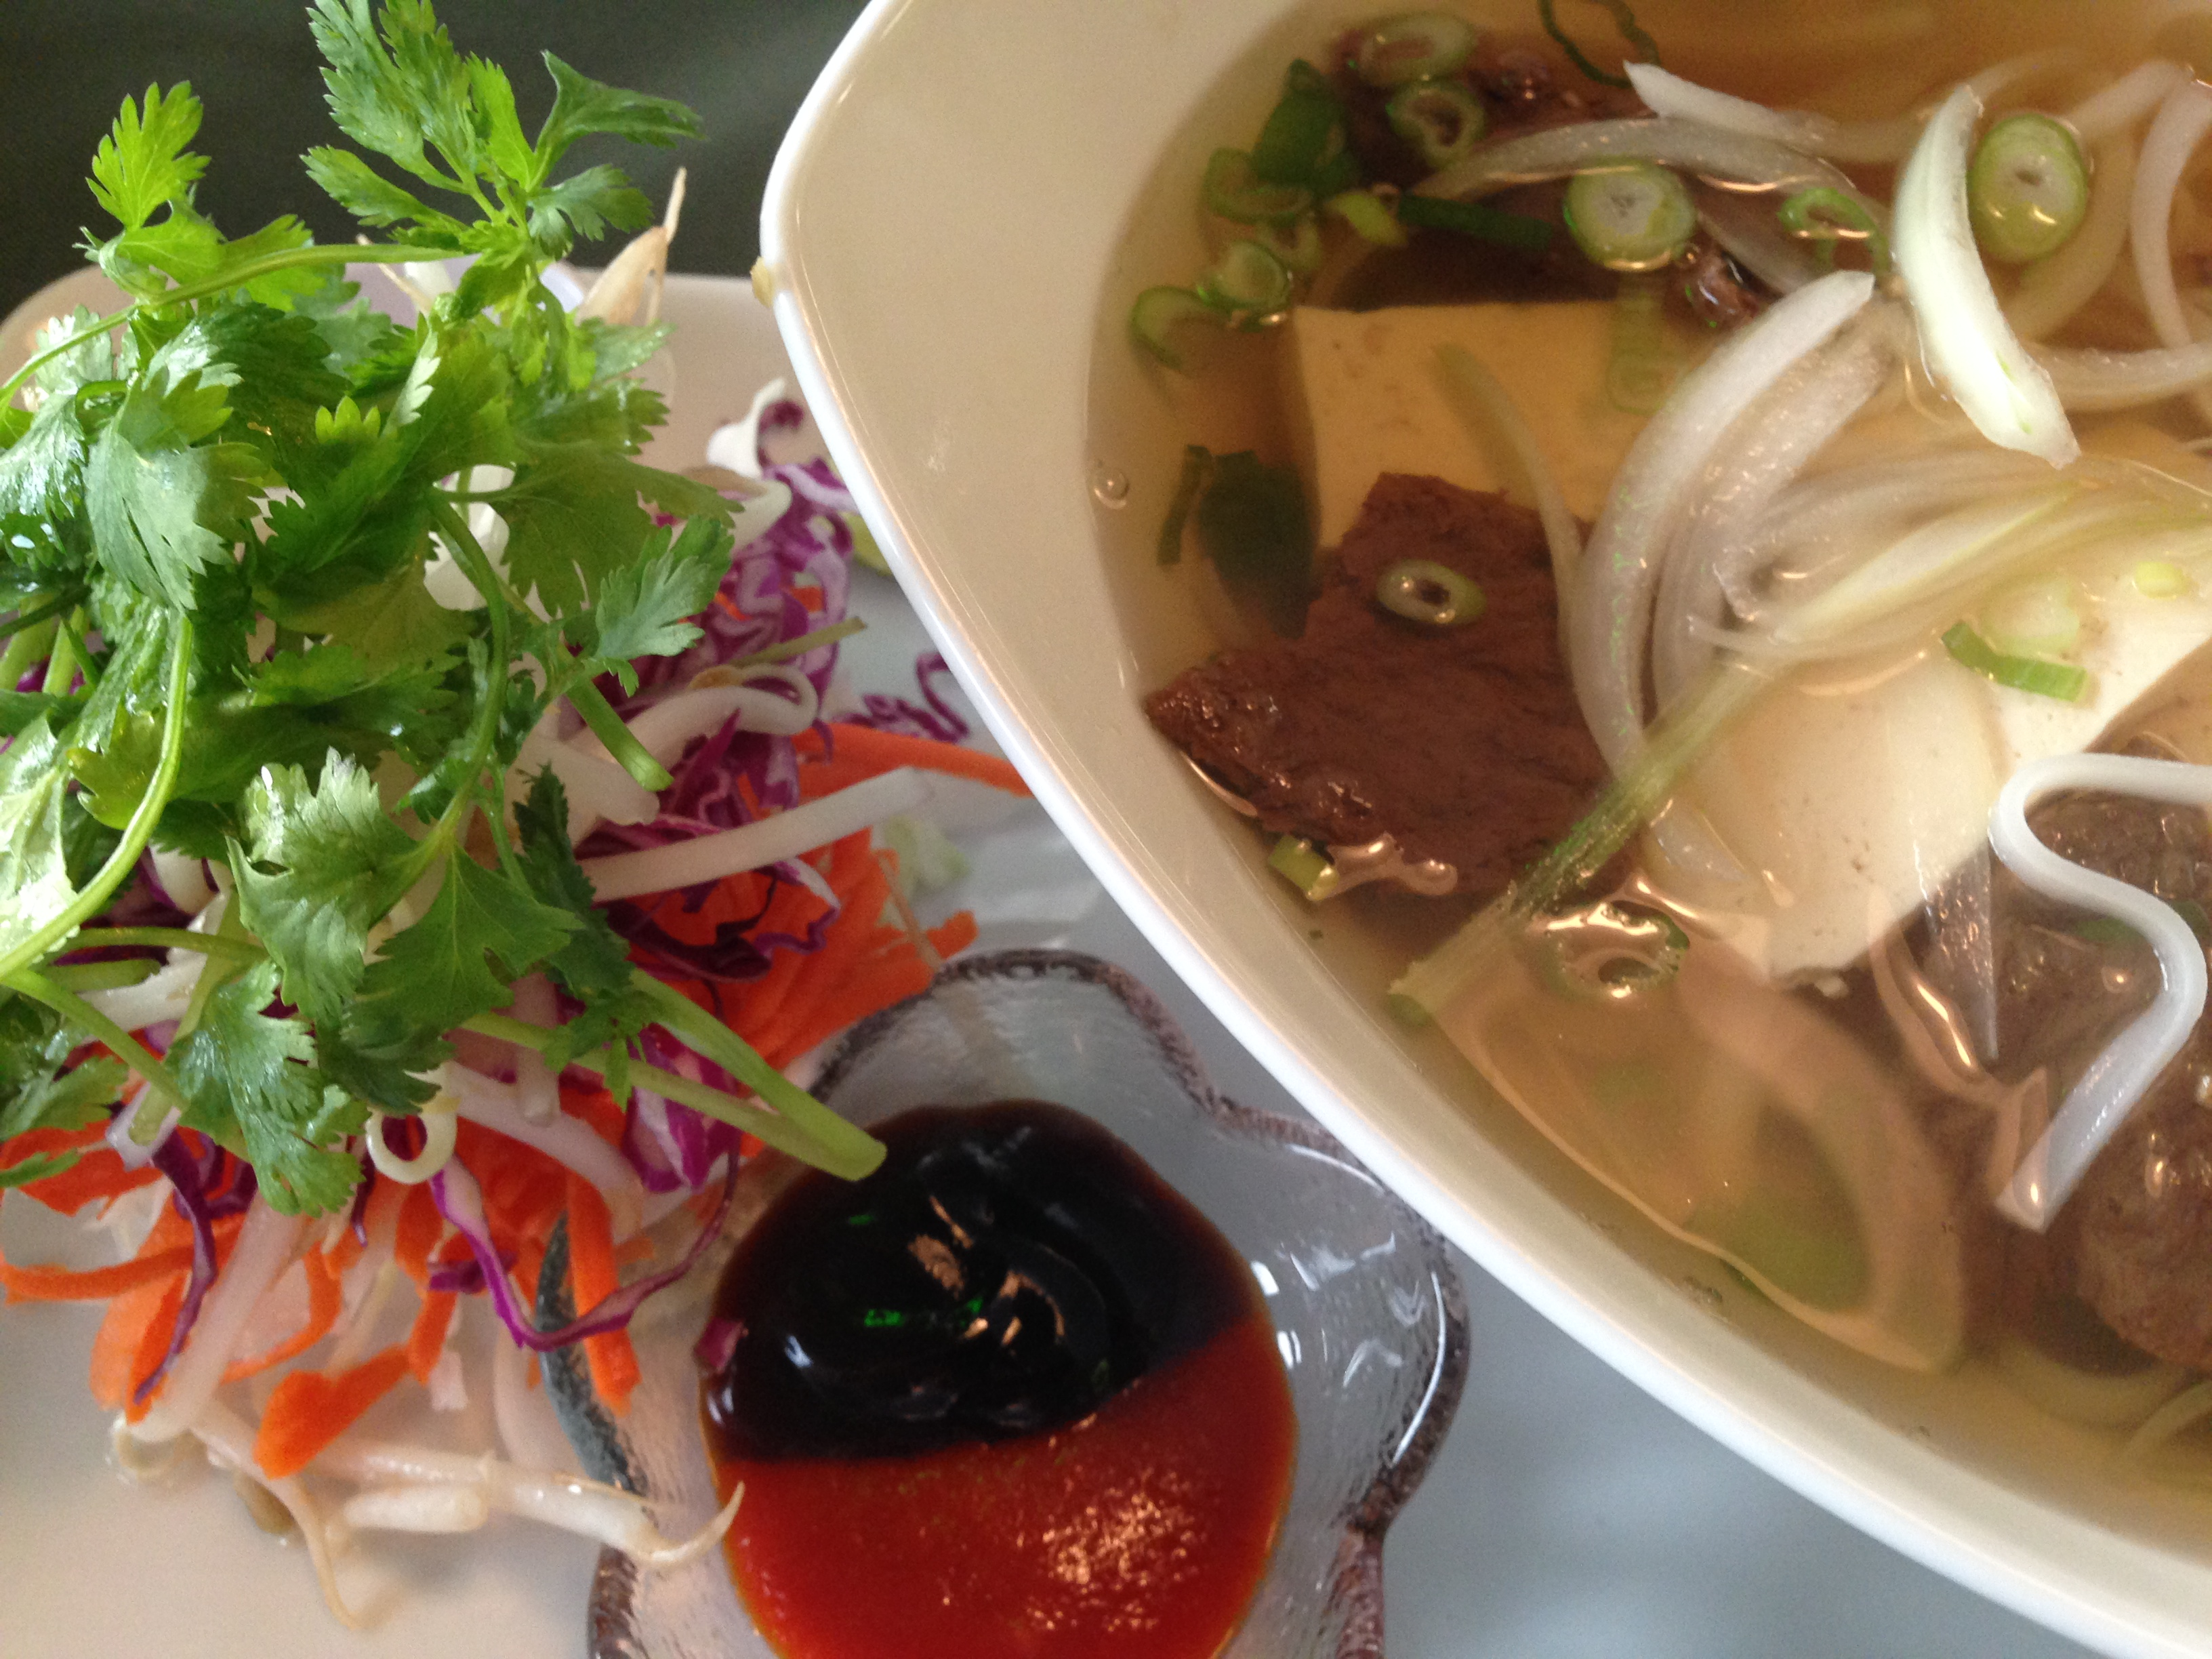 Vegan Pho restaurant dinner by Chef Johnna Gale